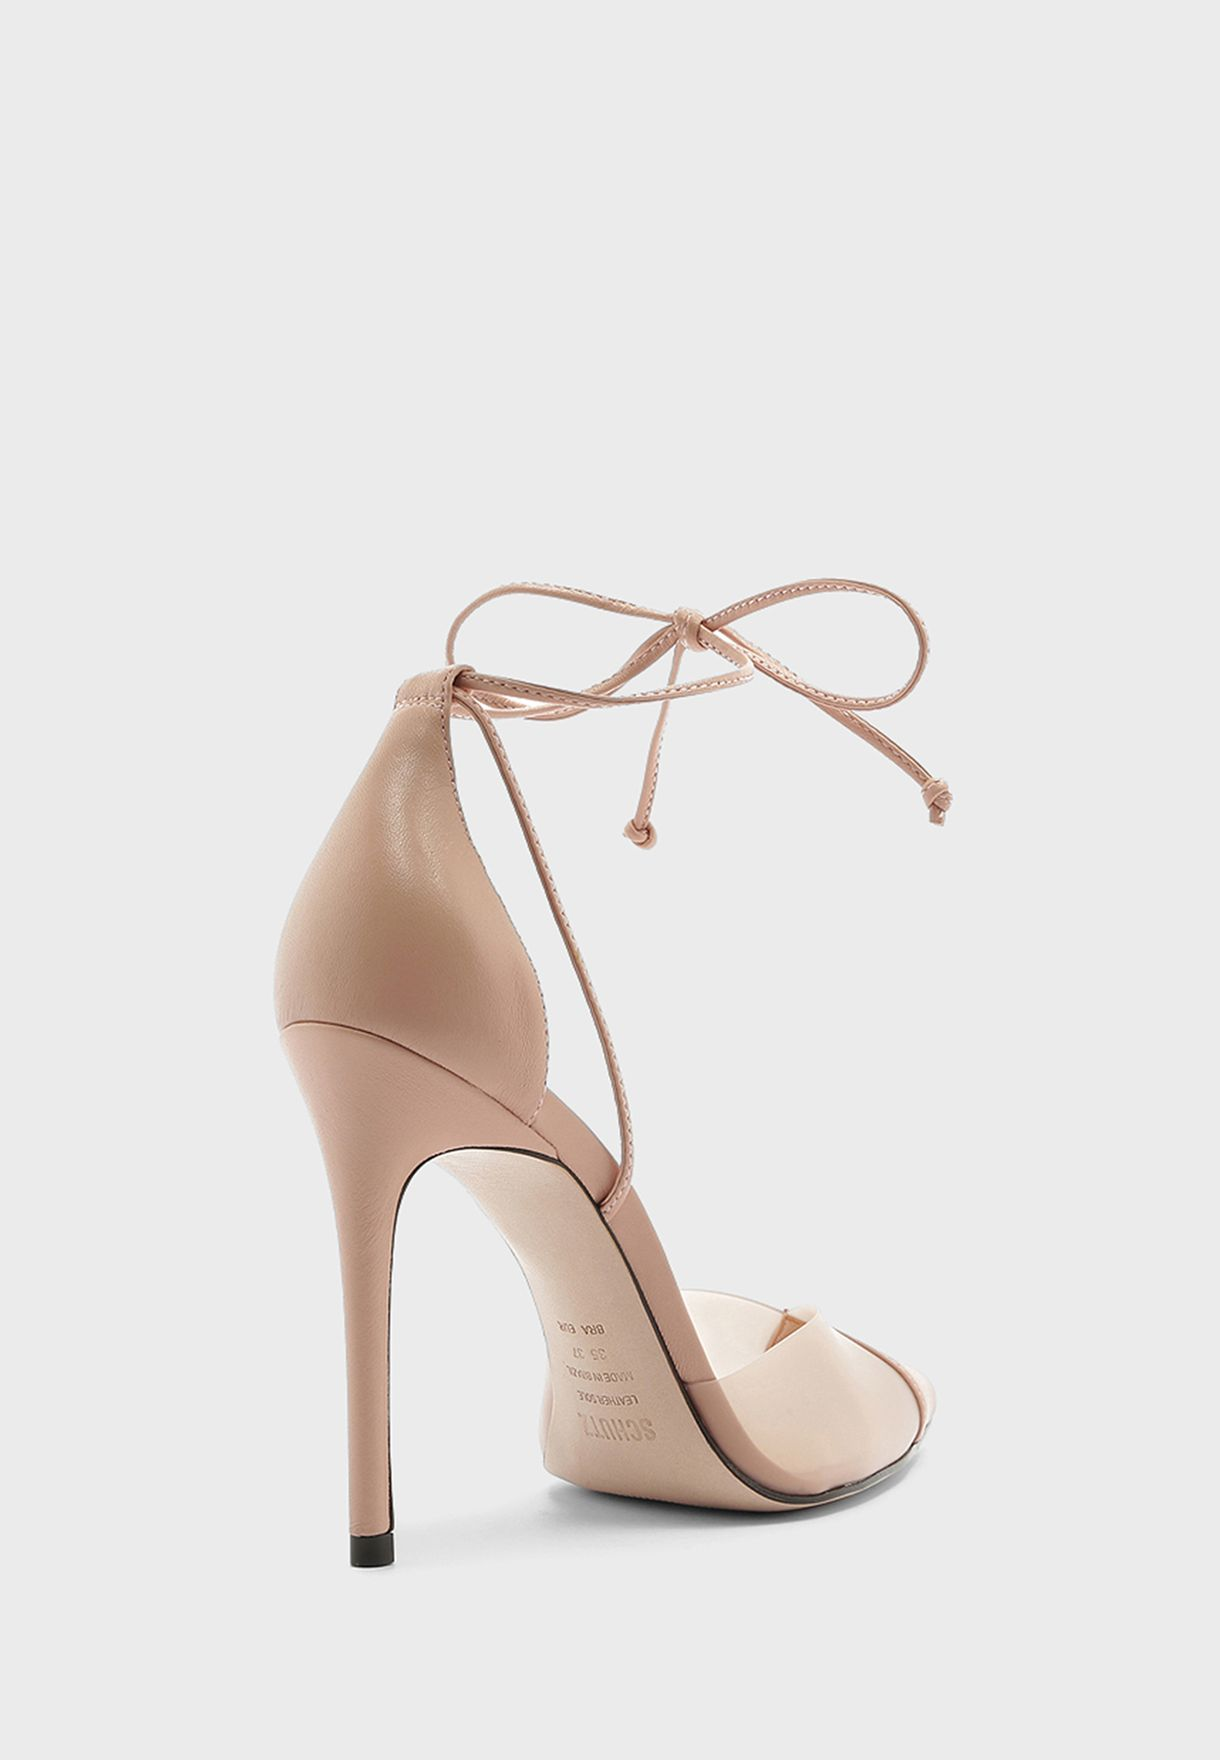 Ankle Strap High Heel Pump